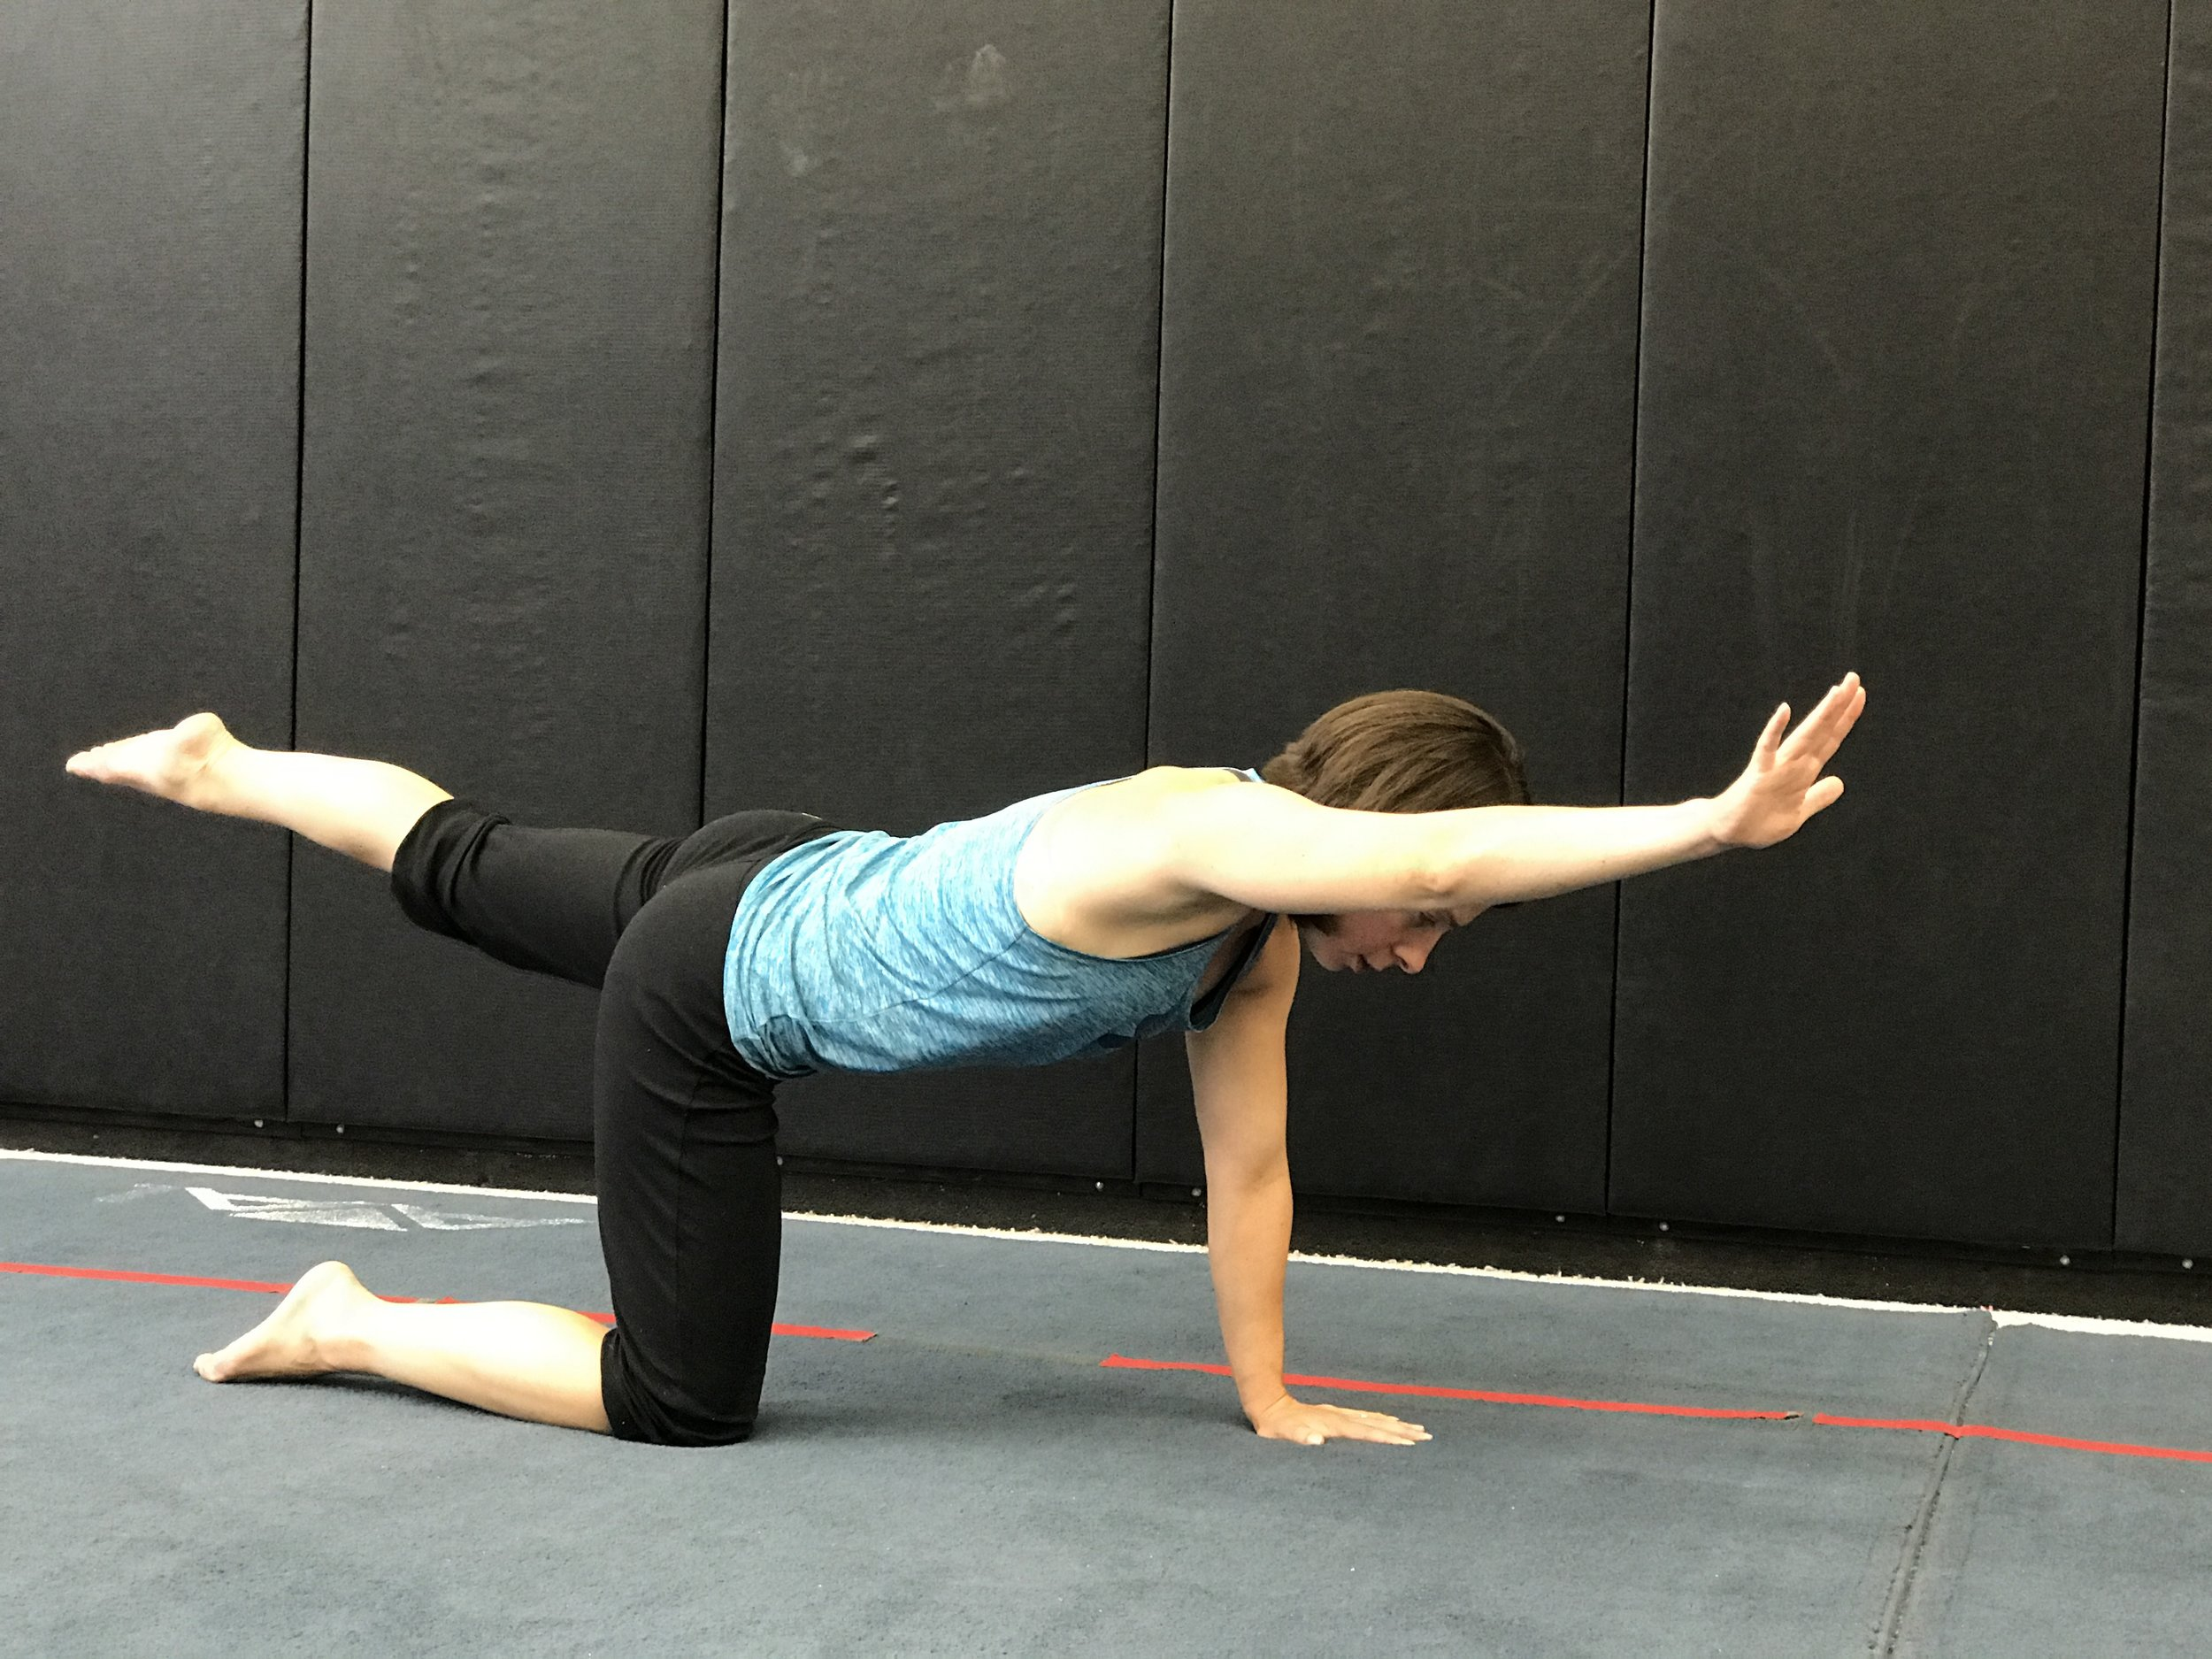 Raise one arm and the opposite leg slowly into the above position. Focus on holding the core tight and do not let the hips twist/rock.  Return to the starting position and then raise the opposite arm/leg.